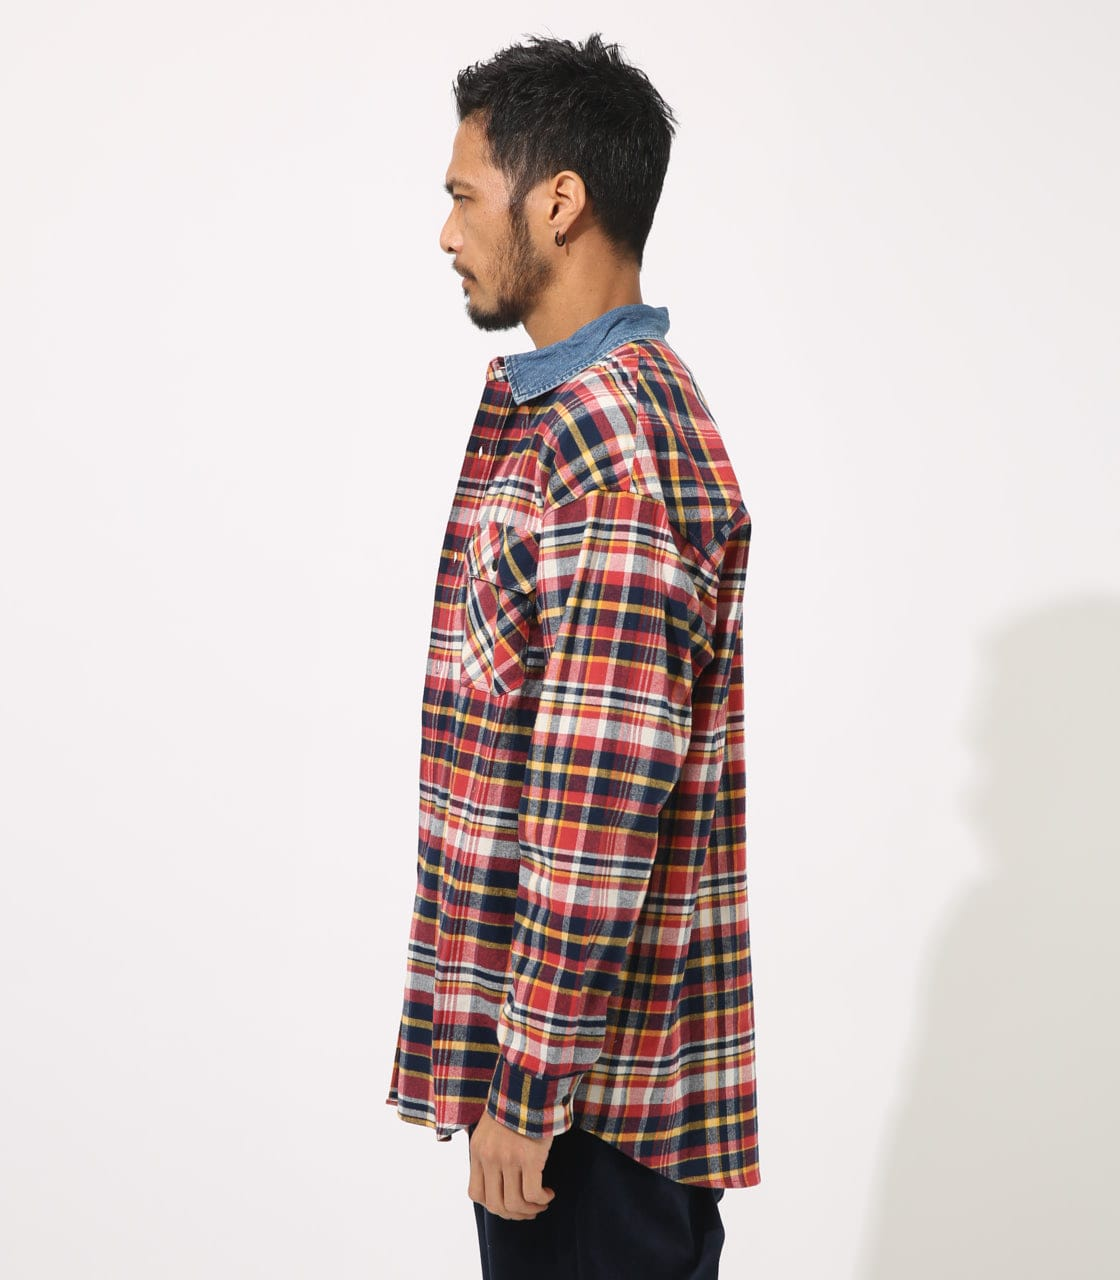 【AZUL BY MOUSSY】DENIM COLLAR BIG CHECK SHIRT 詳細画像 柄RED 6